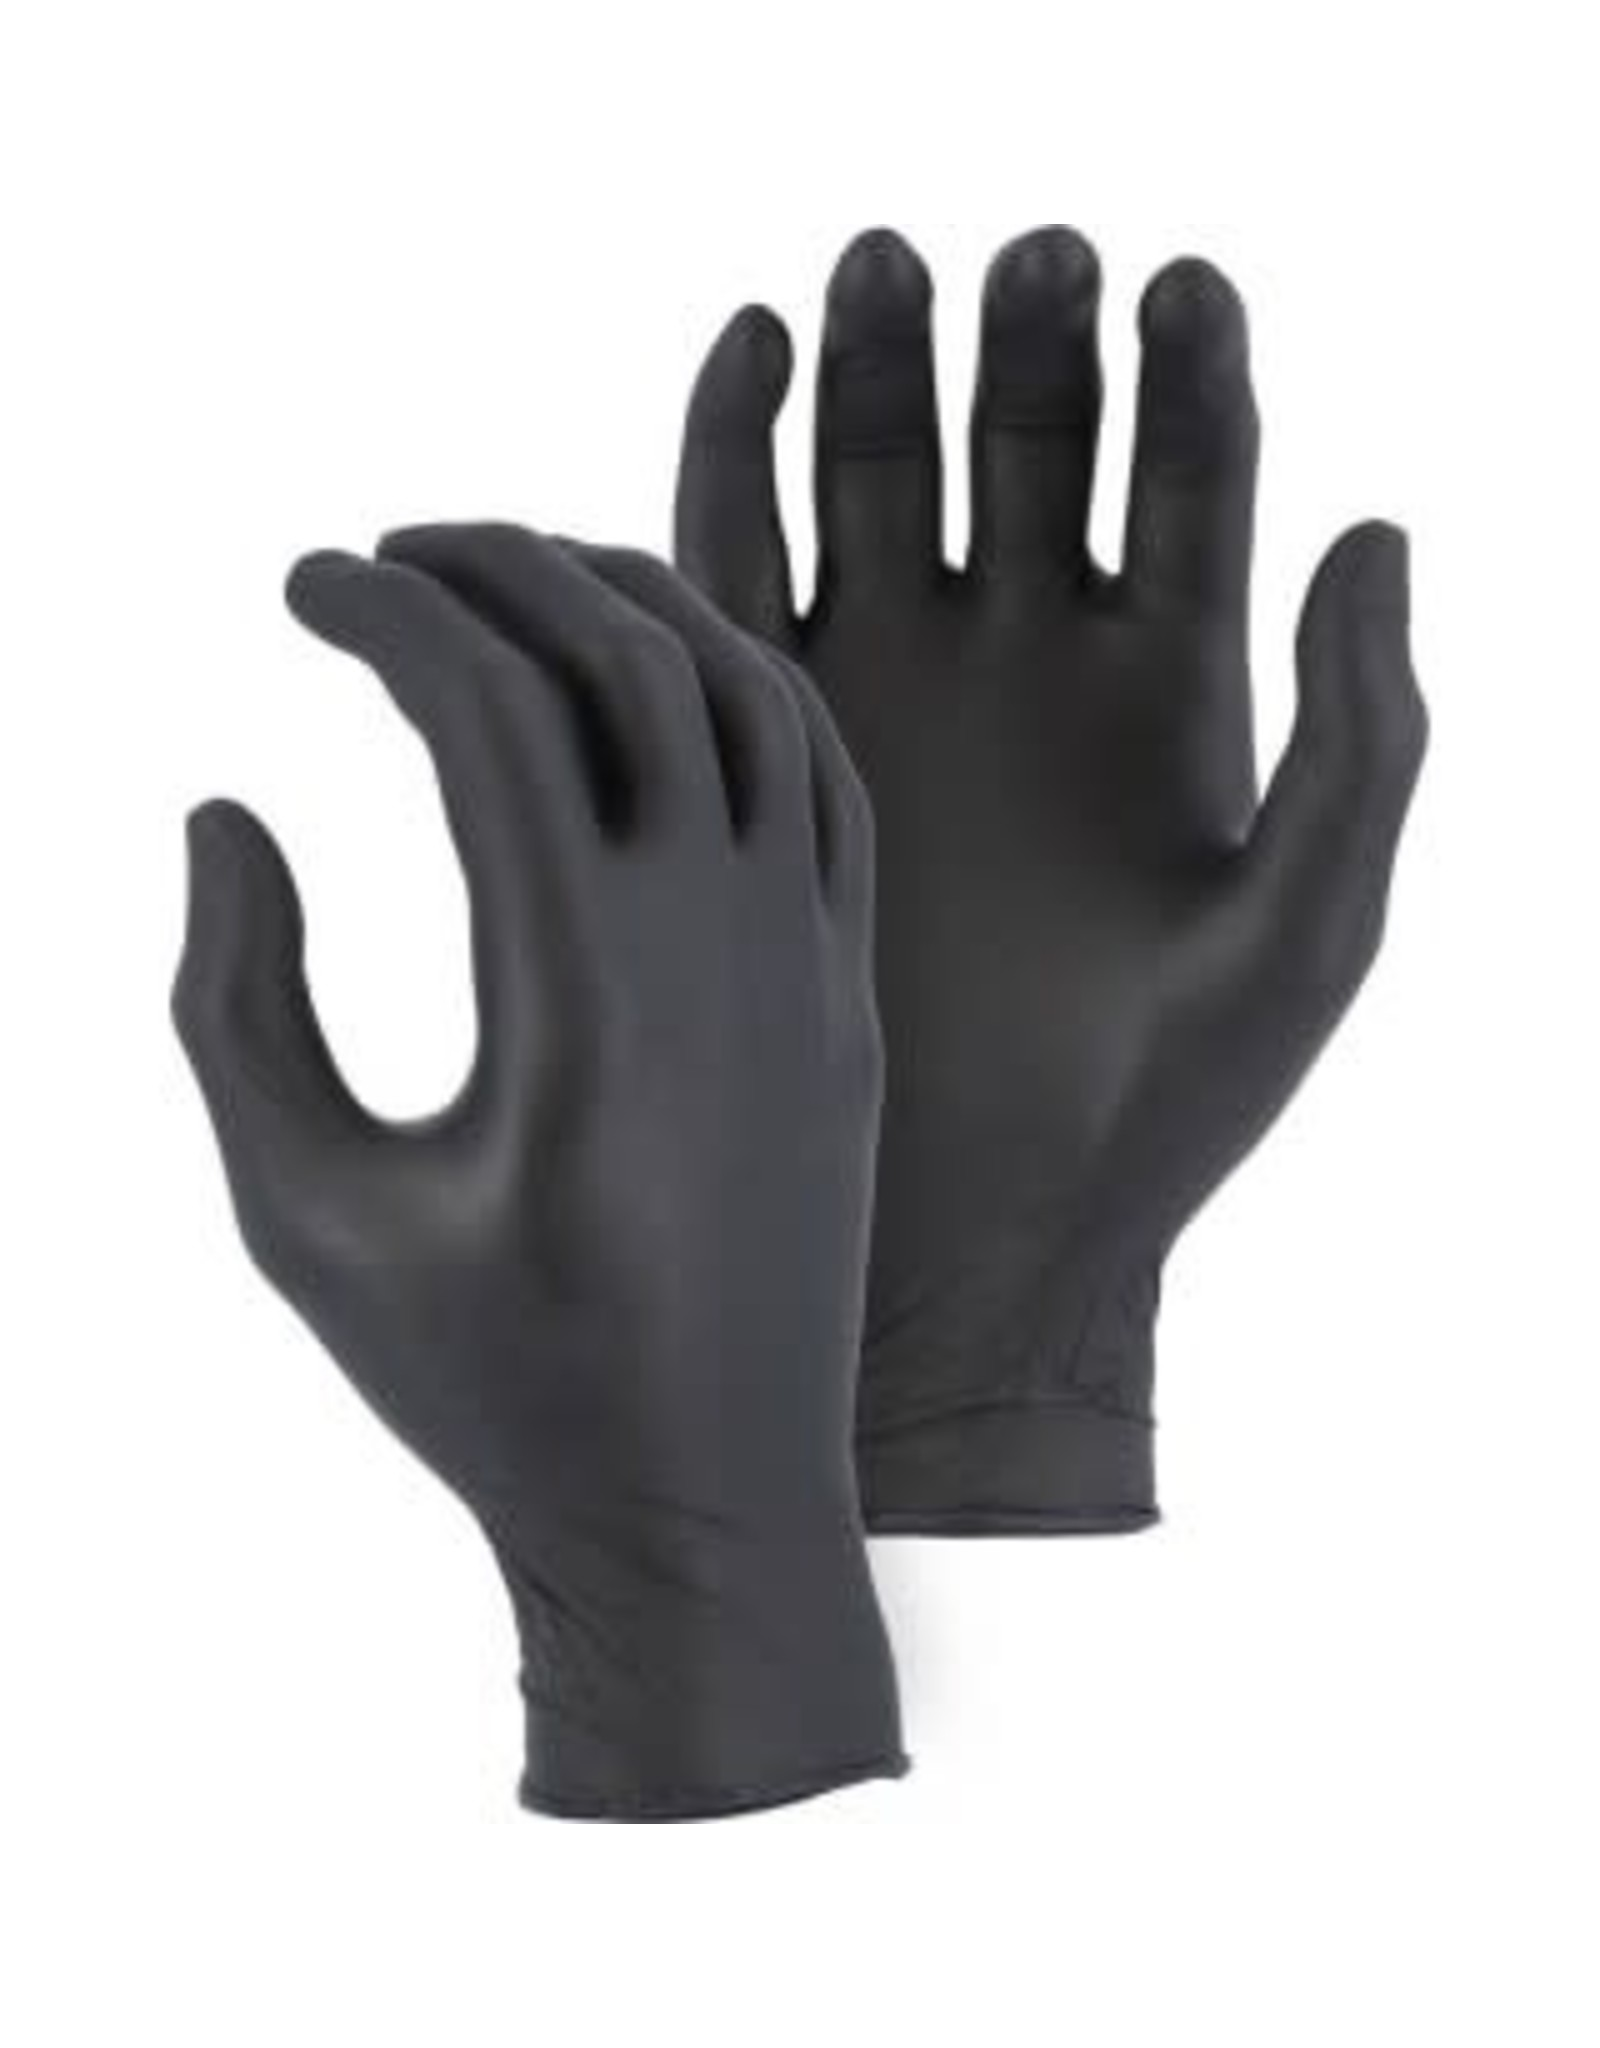 Majestic Glove Disposable Industrial Grade 4 MIL Nitrile Glove, Powder-Free 100 Pair